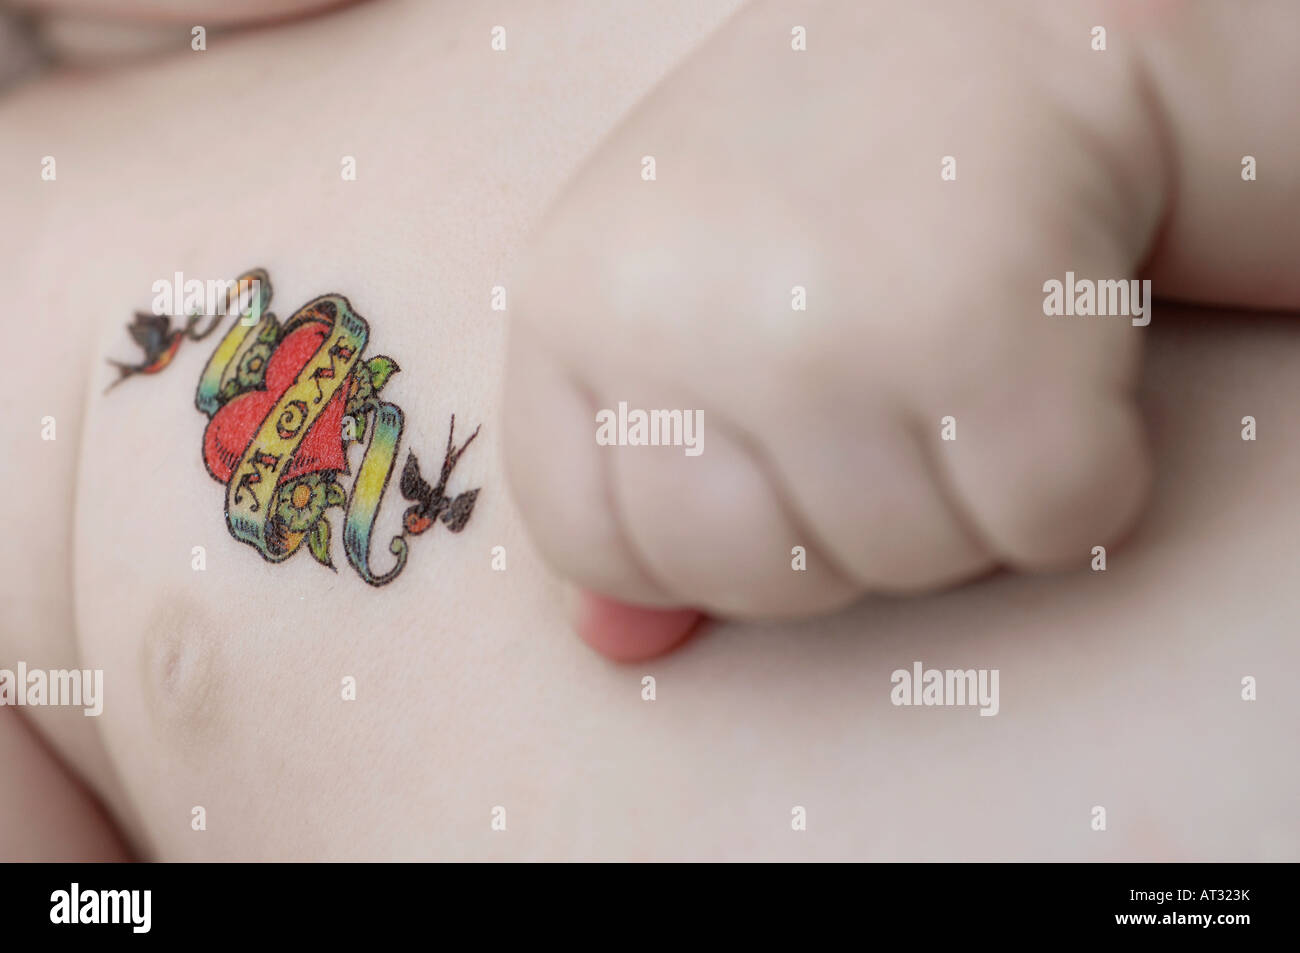 3 month old caucasian baby boy with tattoo Stock Photo: 16185606 - Alamy